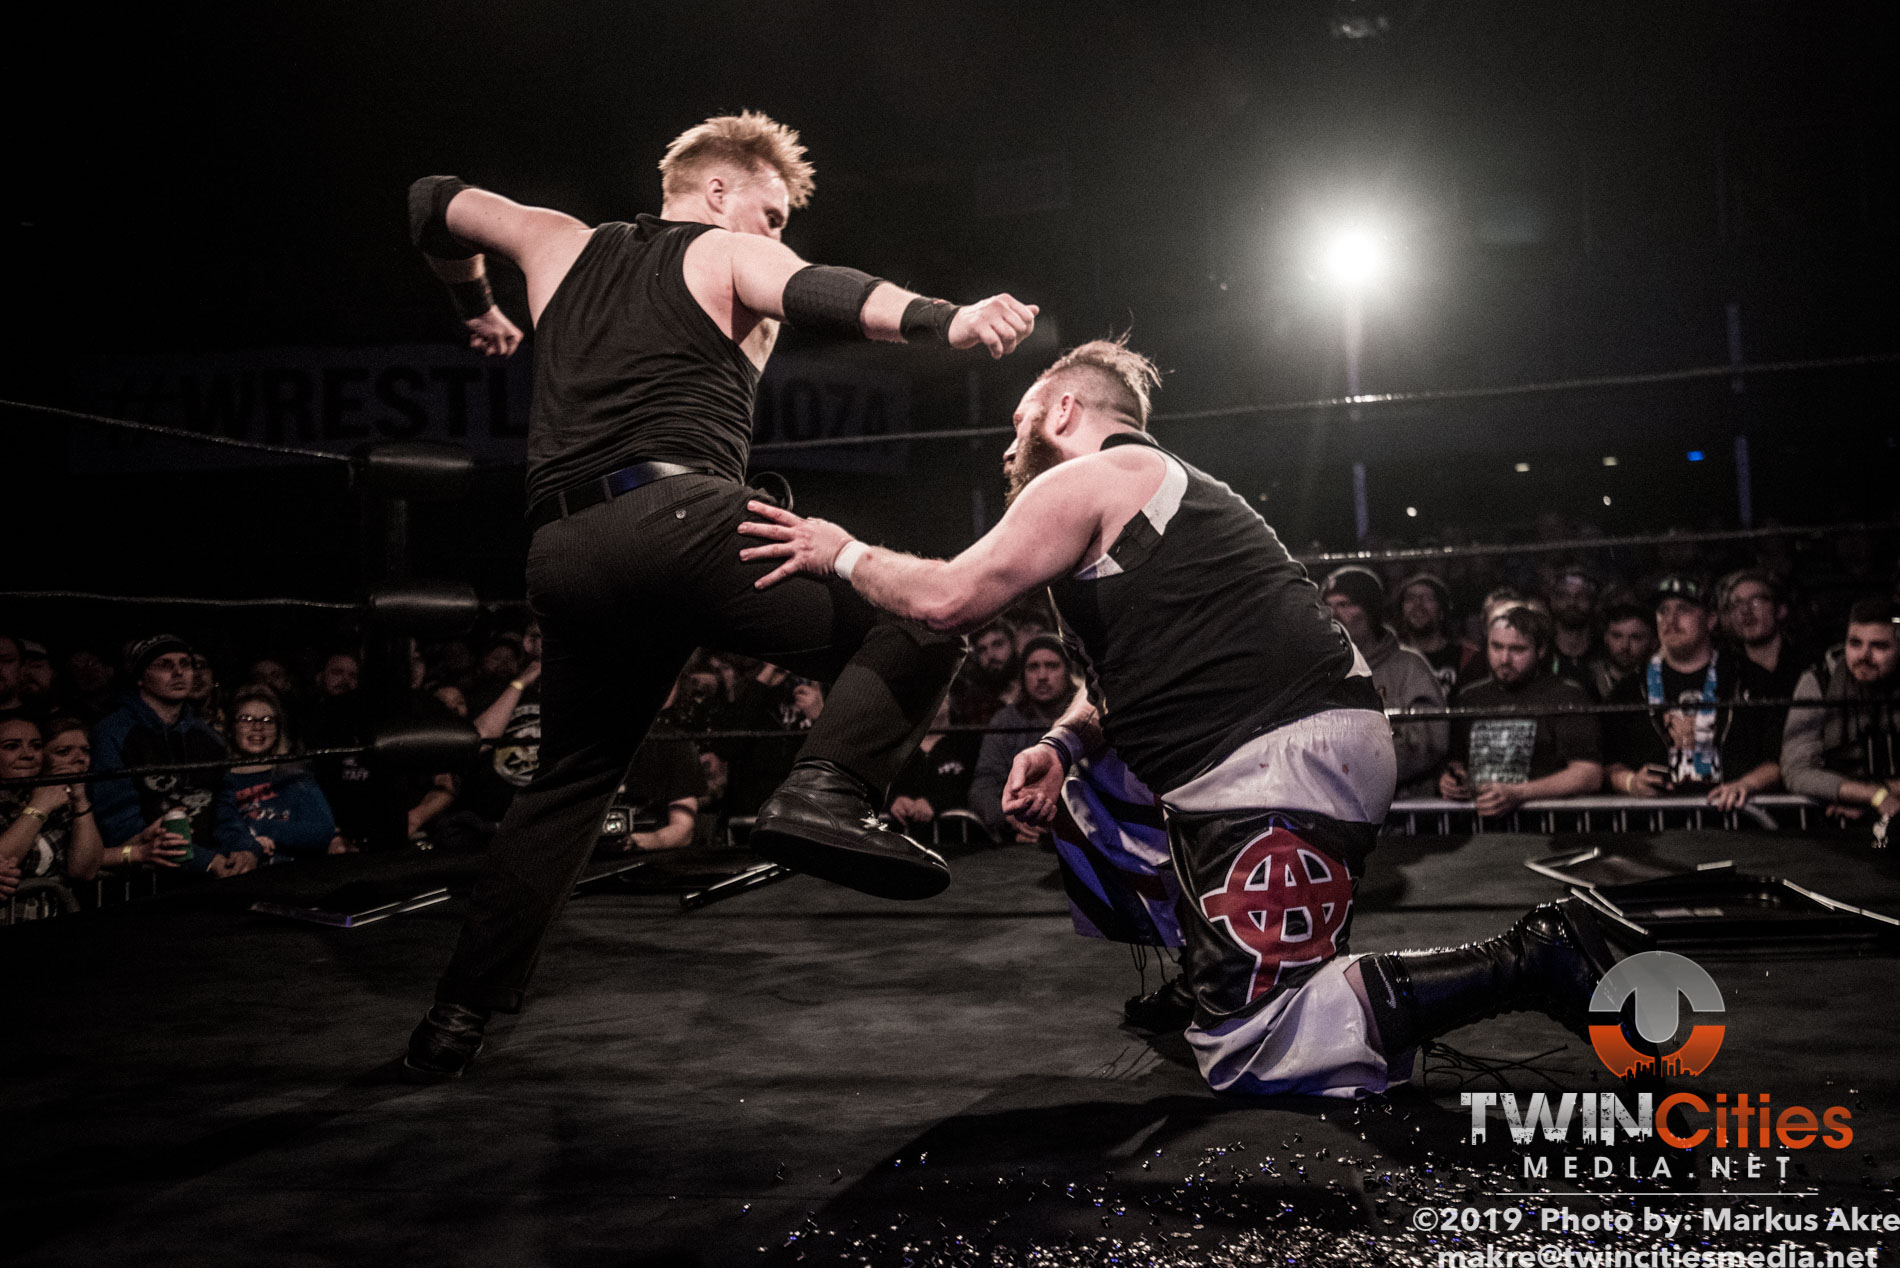 Wrestlepalooza - Match 4-14